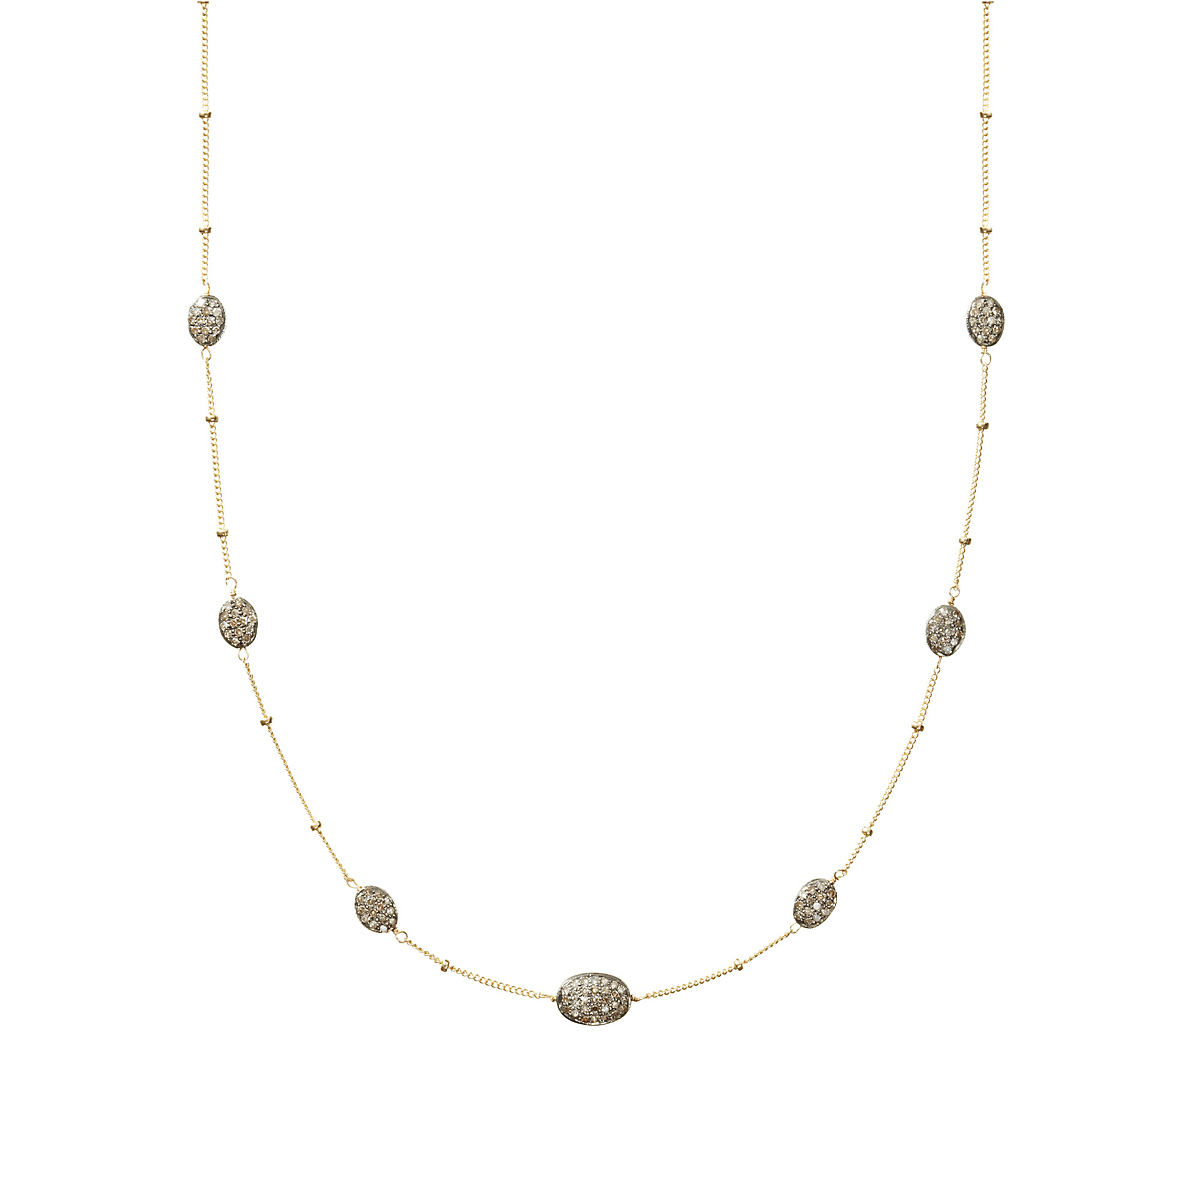 Nikki Baker Lusso Diamond Bean Station Necklace